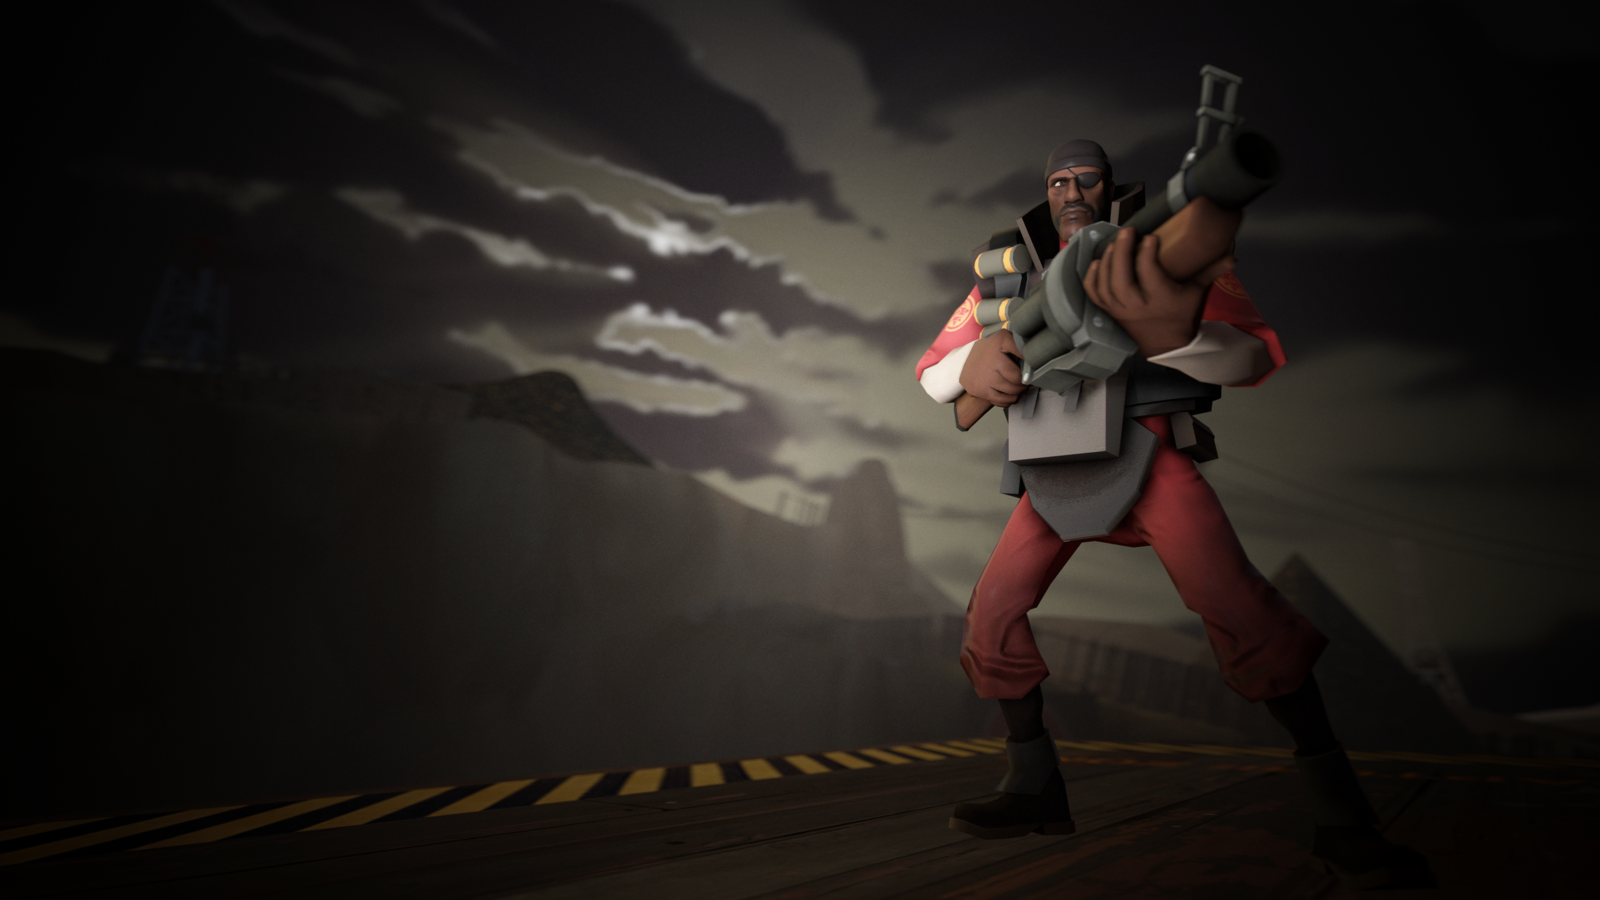 download tf2 demoman wallpaper sfm by daliney watch fan art 1600x900